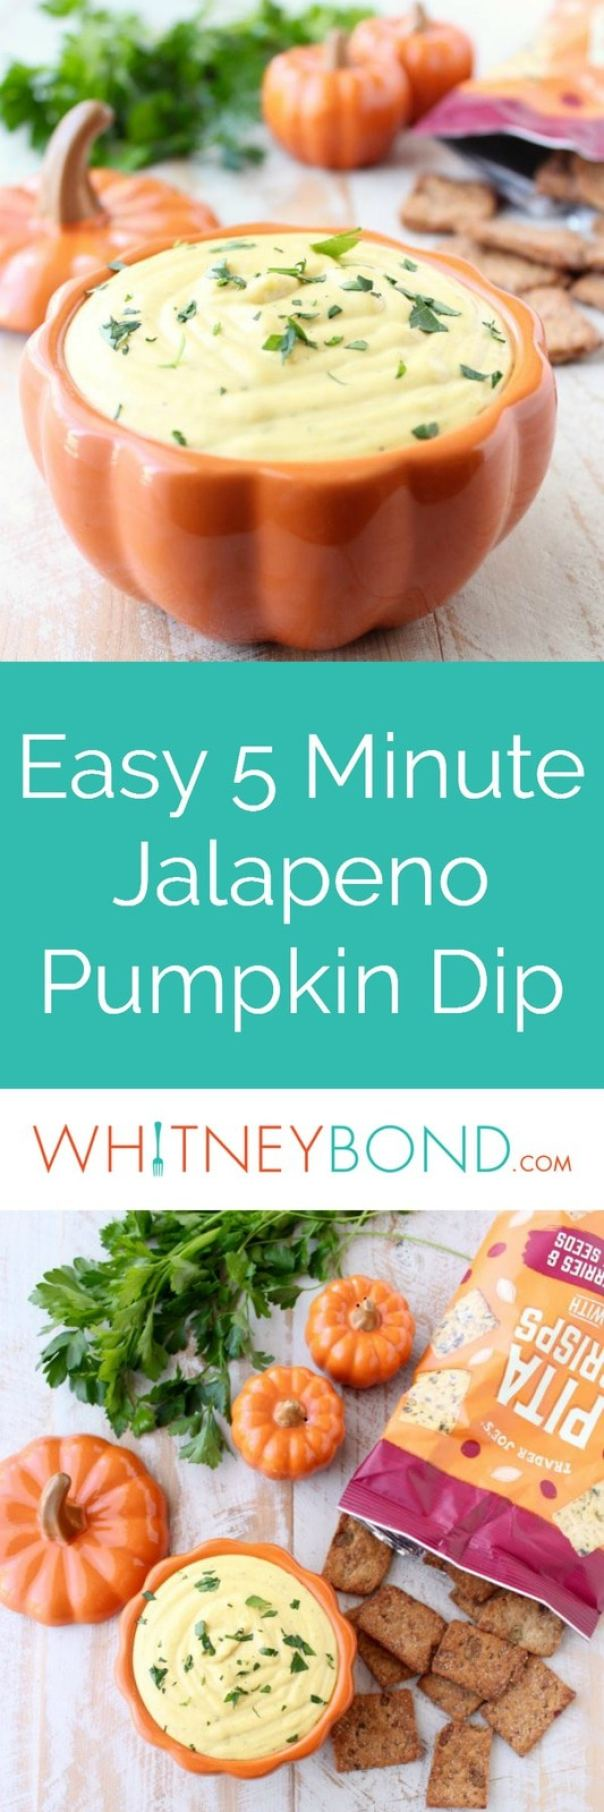 This creamy, sweet and spicy Jalapeno Pumpkin Dip recipe is an easy 5 minute appetizer that's vegetarian, gluten free and perfect for parties!